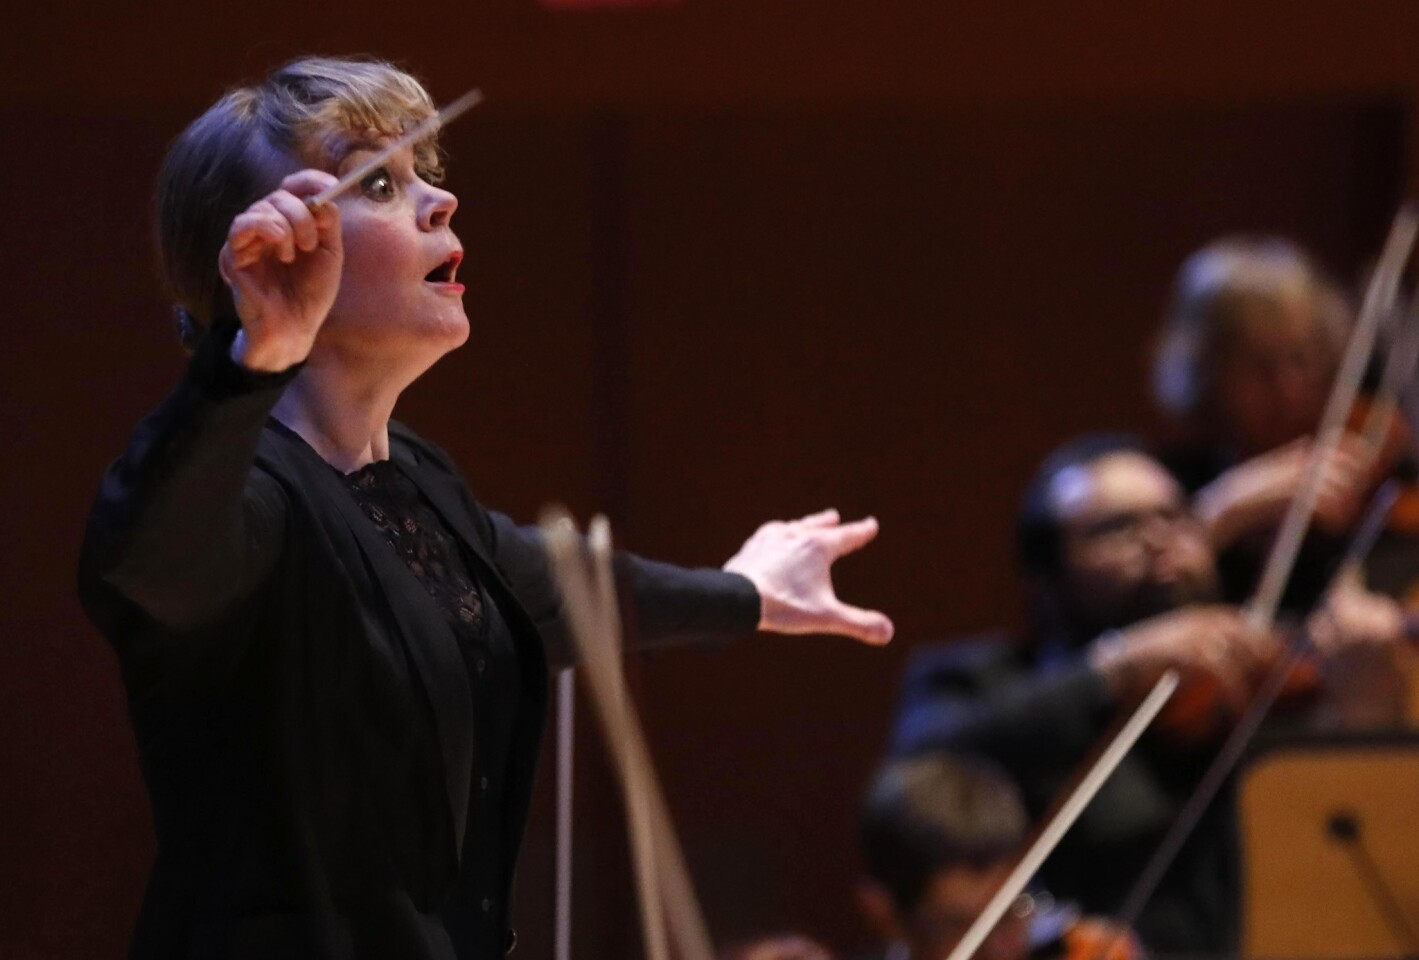 """Susanna Malkki, the new principal guest conductor of the LA Phil, conducts the Los Angeles Philharmonic in a performance of Richard Strauss' """"An Alpine Symphony, Op.64"""" at the Disney Concert Hall on Jan. 19."""